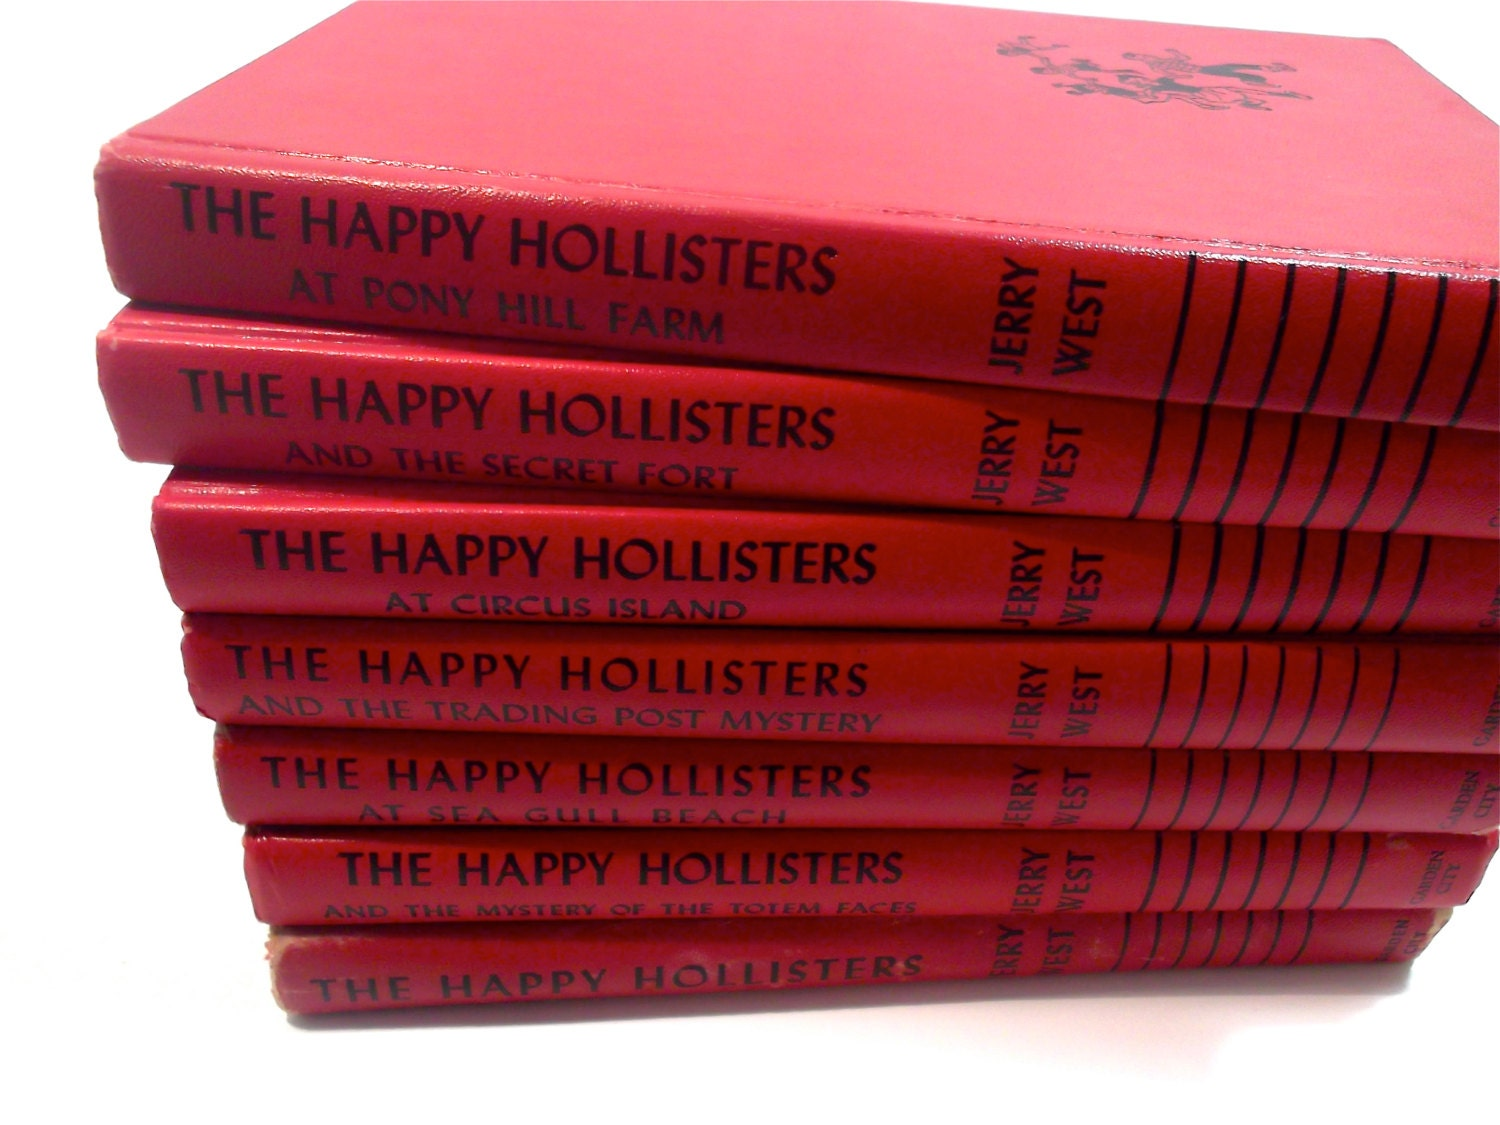 1950s 'The Happy Hollisters' Adventure Series by Jerry West Illustrations by Helen S. Hamilton. Set of 7 Red Books. Book Decor. - PacificBlueBooks